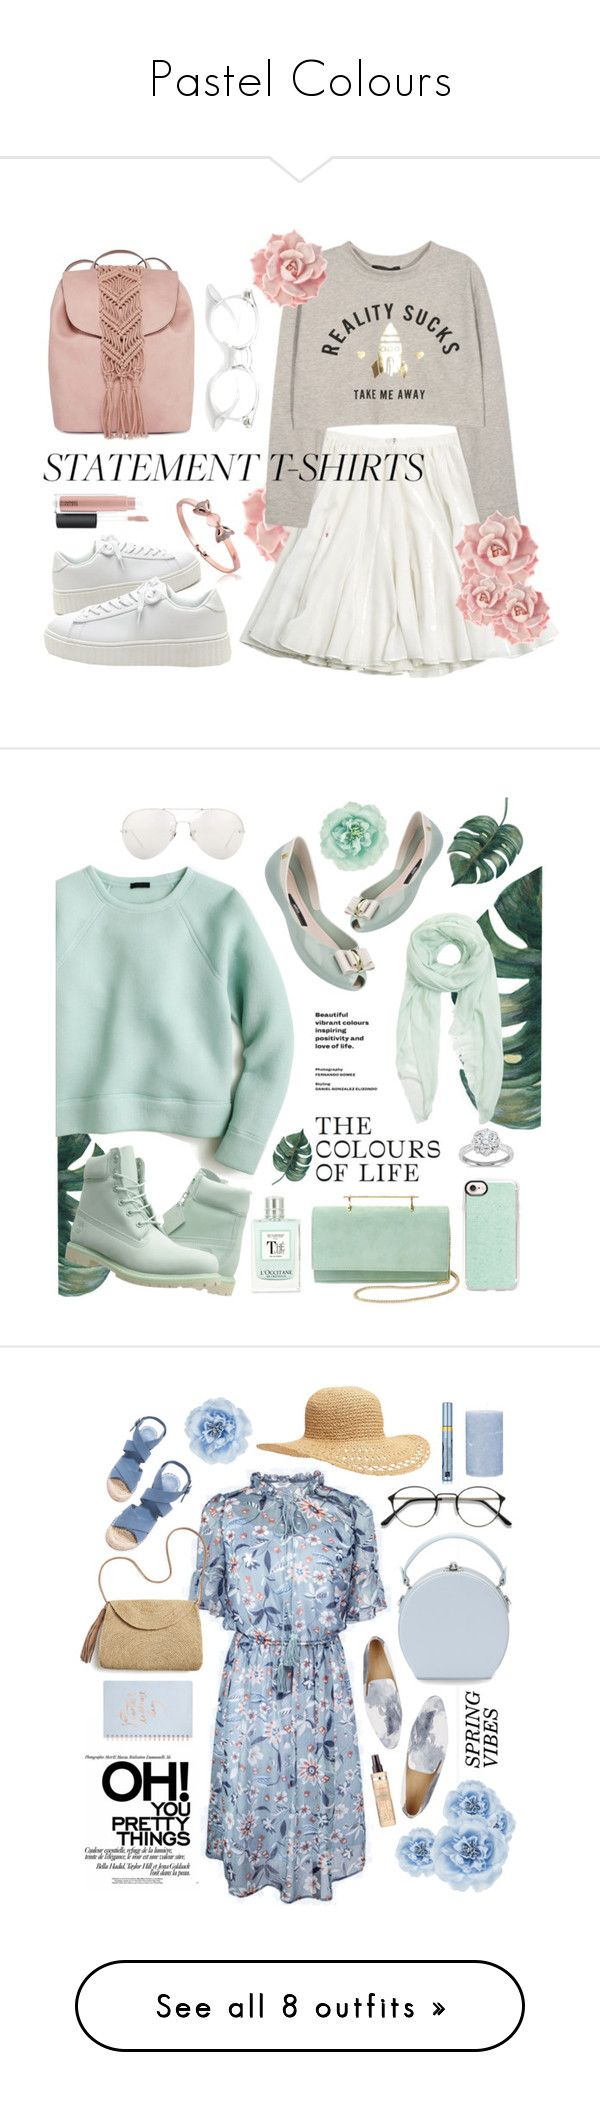 """""""Pastel Colours"""" by maykarsy ❤ liked on Polyvore featuring CÉLINE, T-shirt & Jeans, MAC Cosmetics, Melissa, J.Crew, Linda Farrow, Monsoon, Furla, M2Malletier and Casetify"""